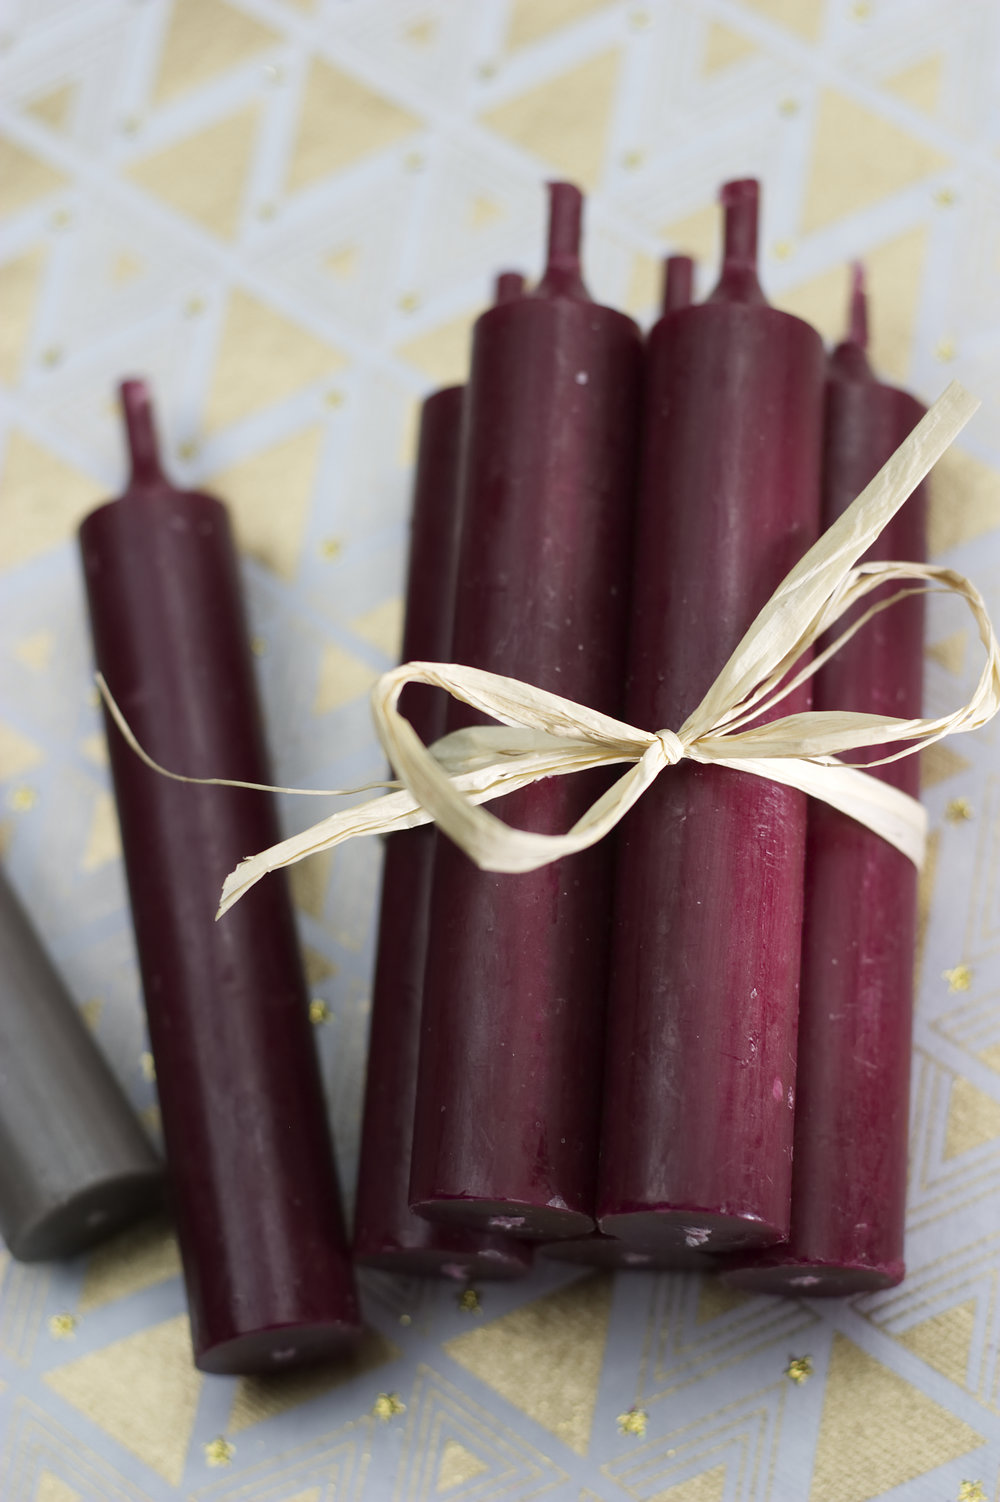 A bundle of several candles wrapped with a bow